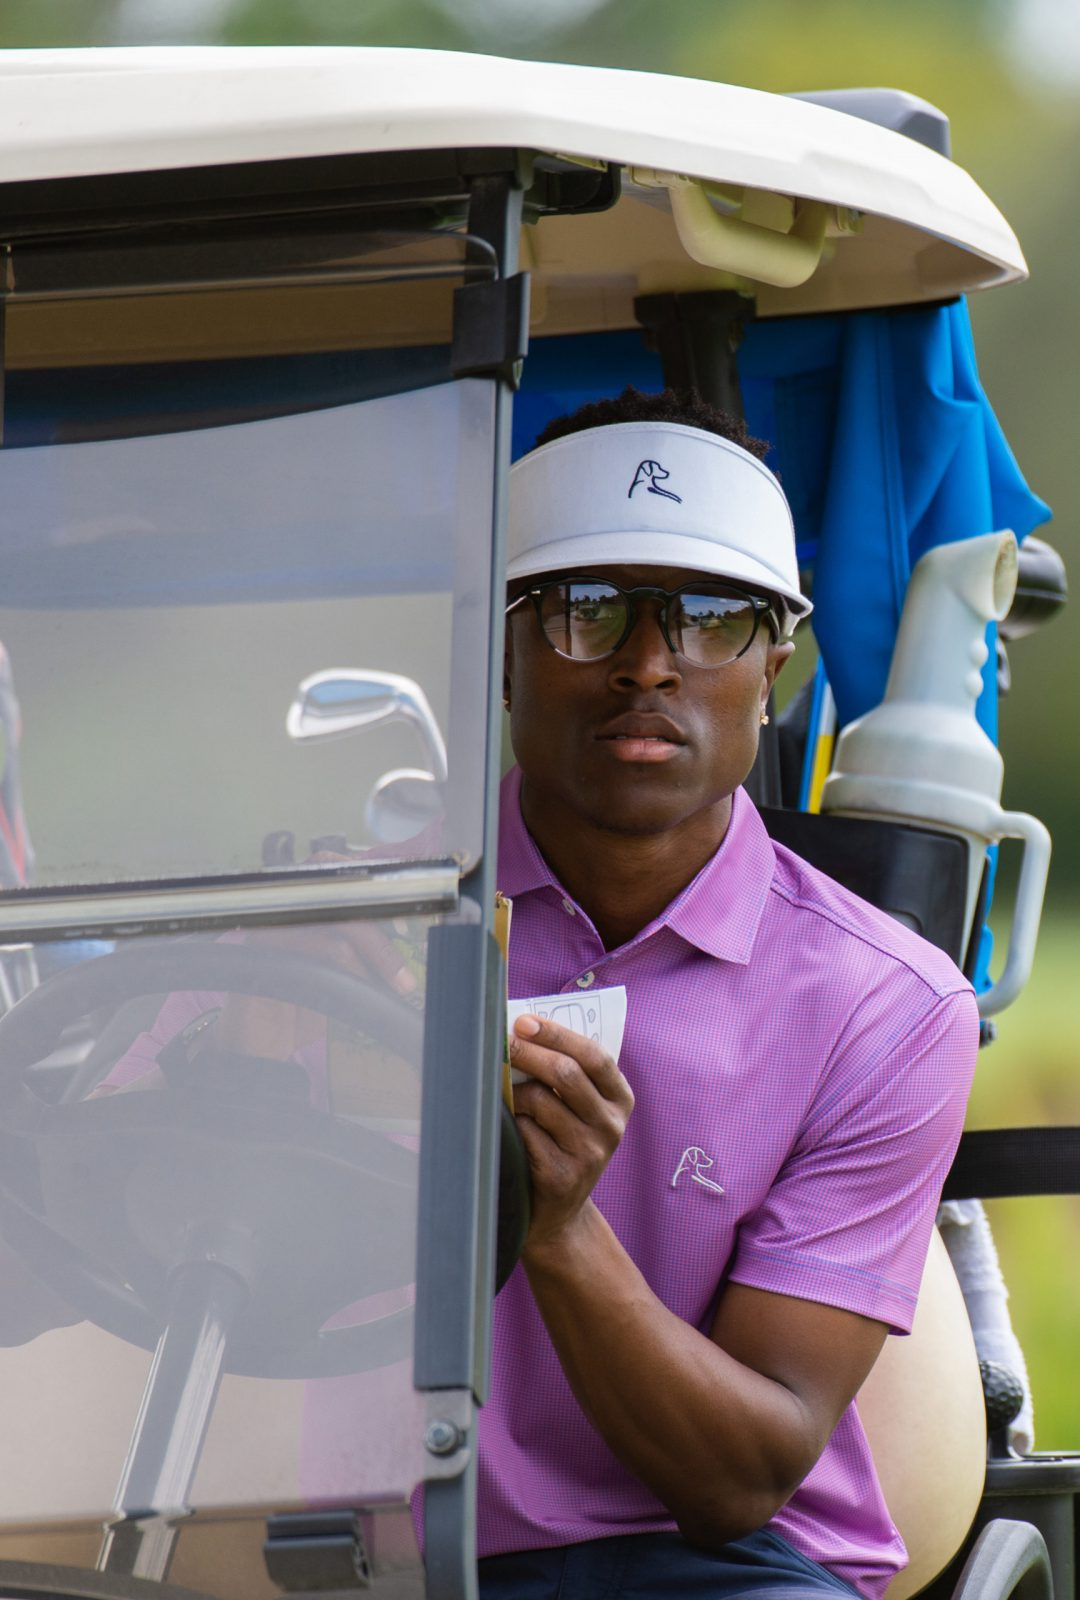 PORT ST. LUCIE, FL - FEBRUARY 21: Joe Hooks in his golf cart on the third hole during the final round of the APGA Tour held at the PGA Golf Club on February 21, 2021 in Port St. Lucie, Florida. (Photo by Hailey Garrett/PGA of America)